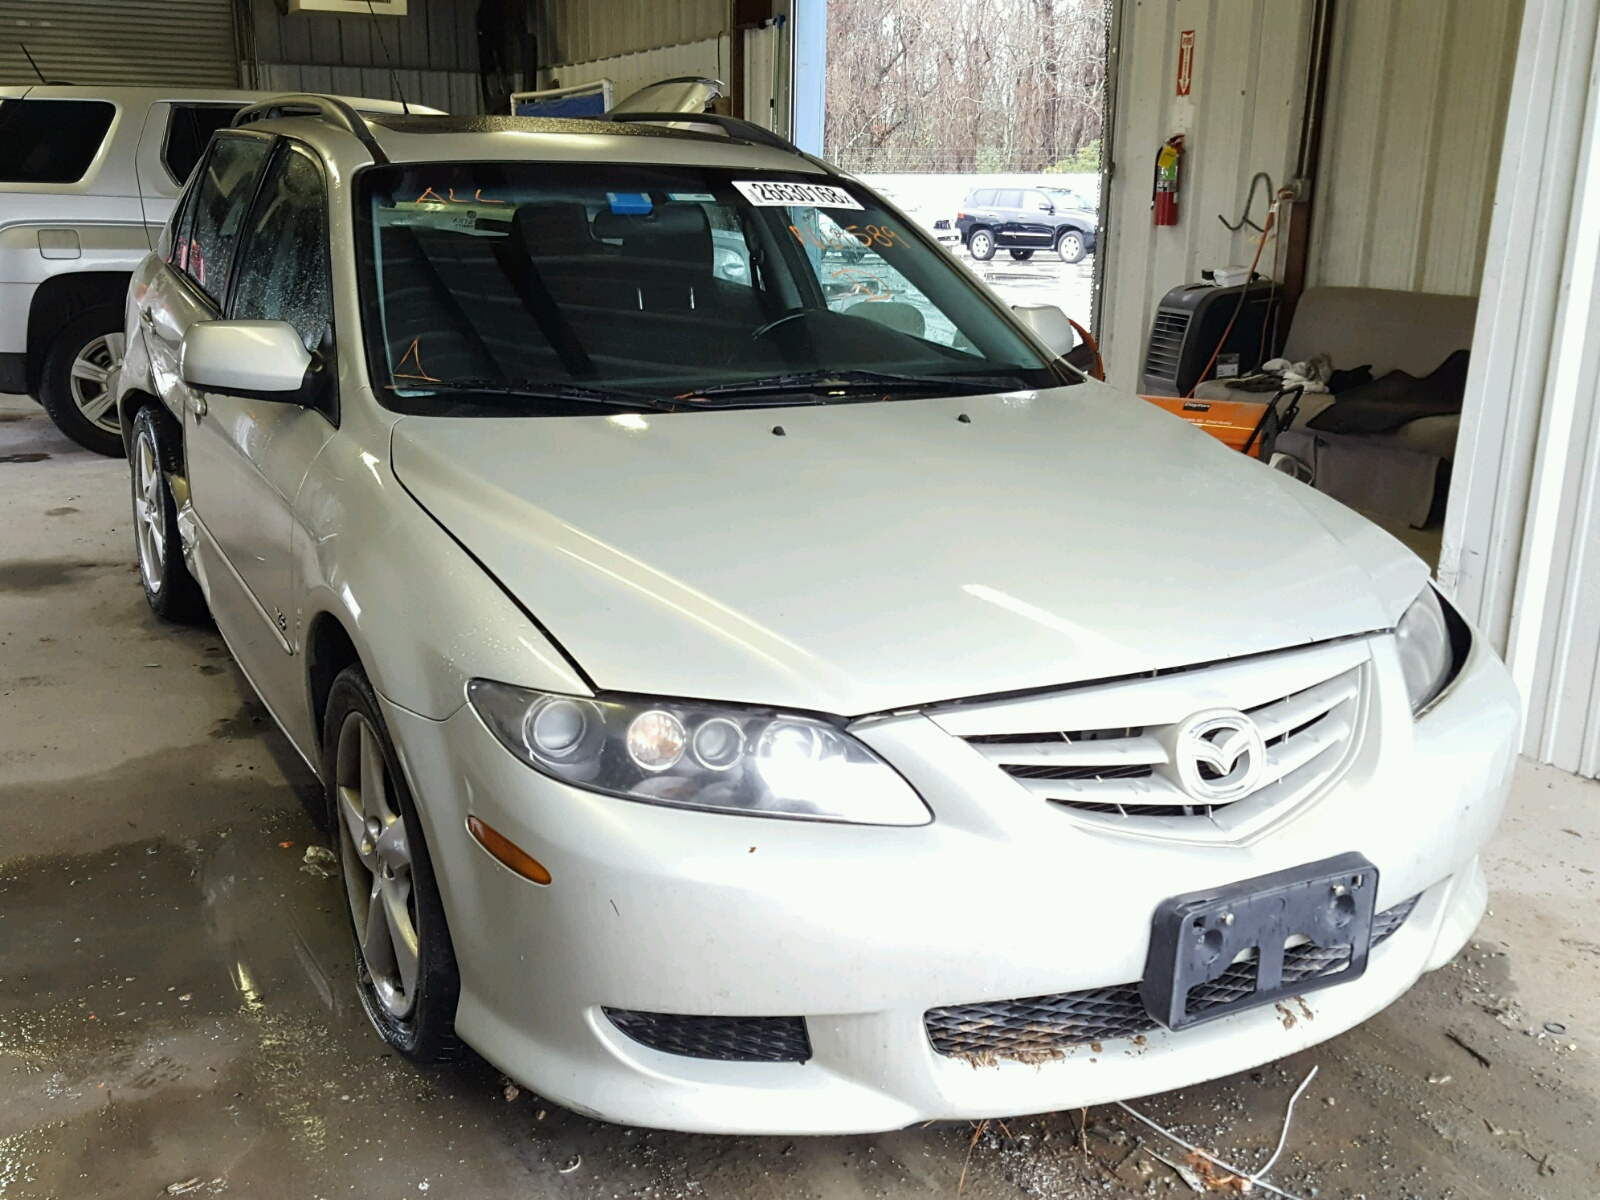 Auto Auction Ended On Vin 1yvgf22d525263772 2002 Mazda 626 Es Lx In White 2004 6 S 30l